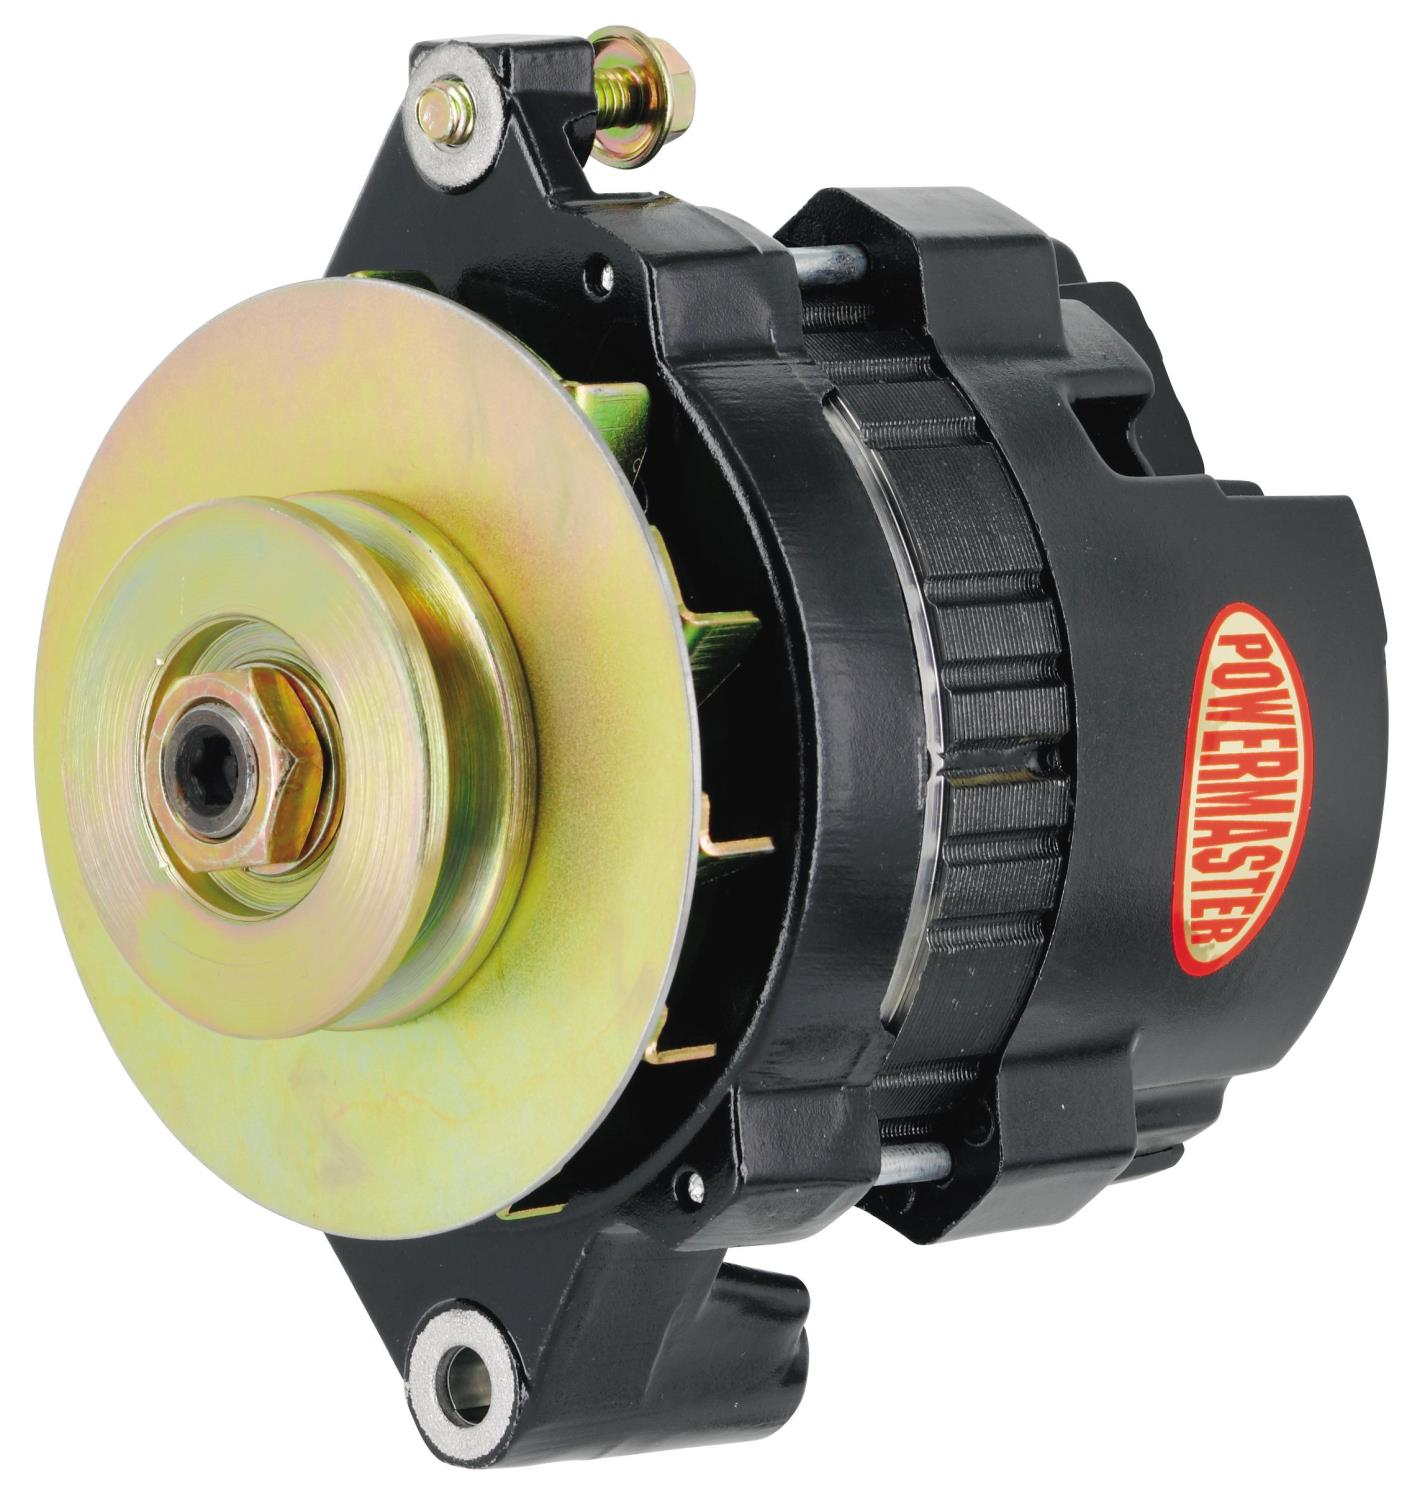 Powermaster 8468 - Powermaster GM CS121 Style 5x5 Compact Race Alternators